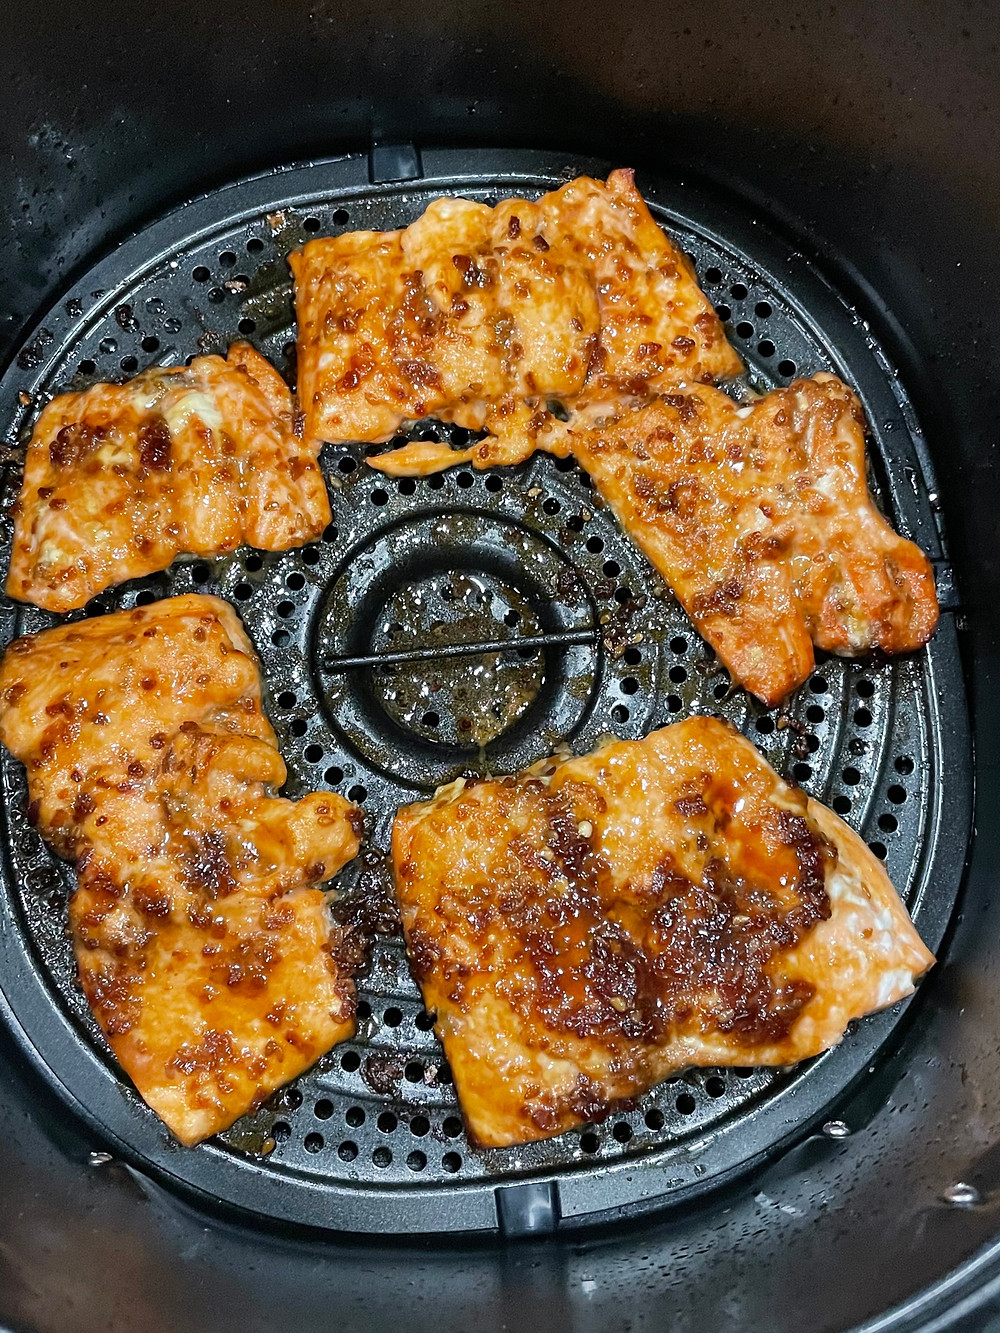 Messy Teriyaki Salmon in an air fryer